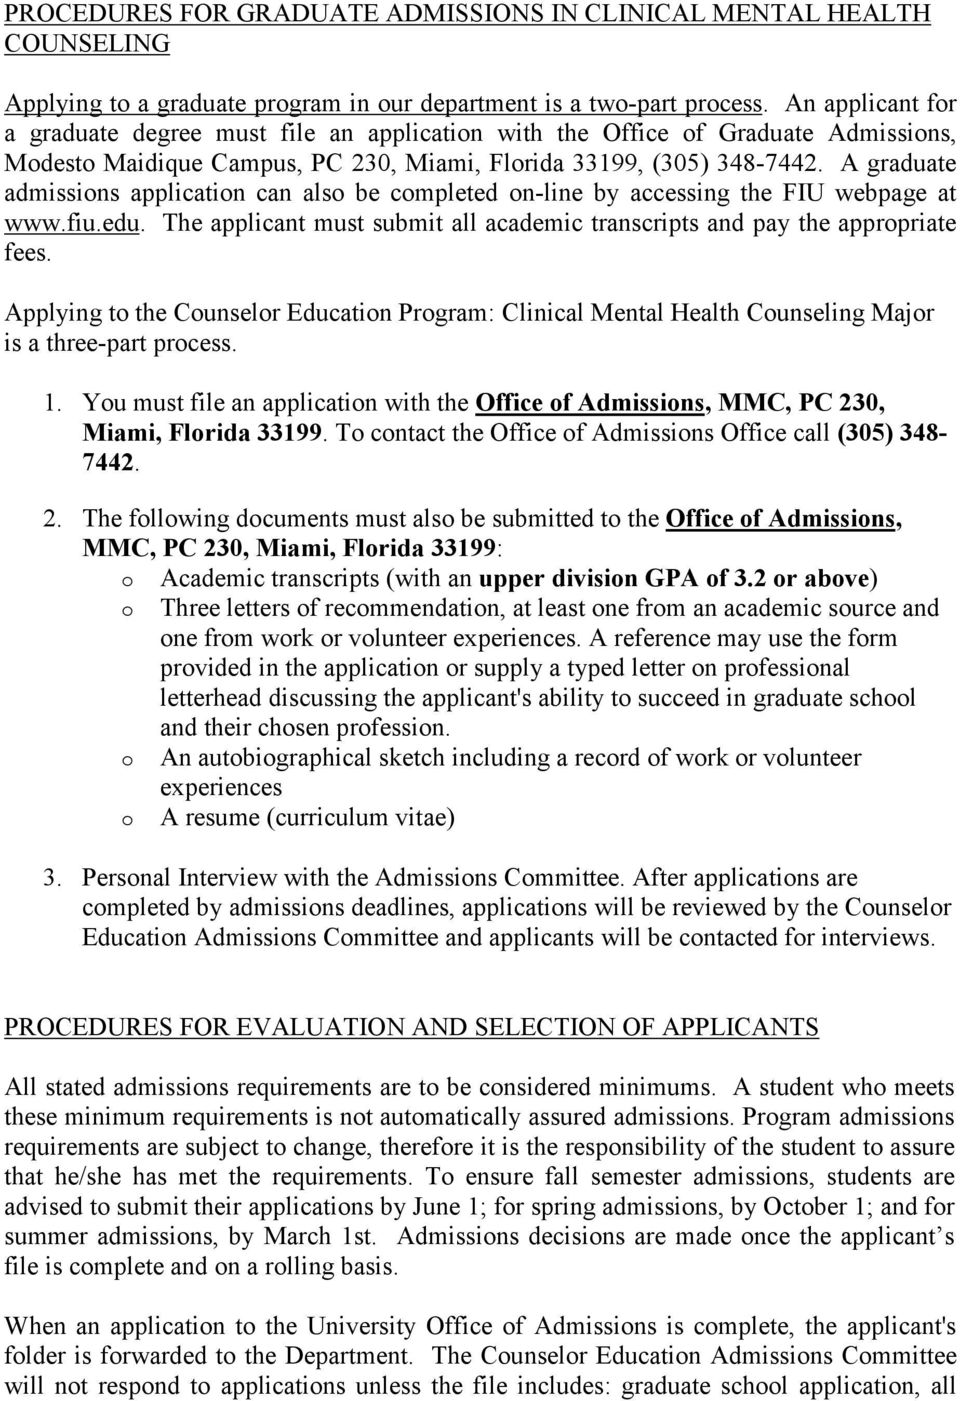 Master Of Science In Counselor Education Clinical Mental Health